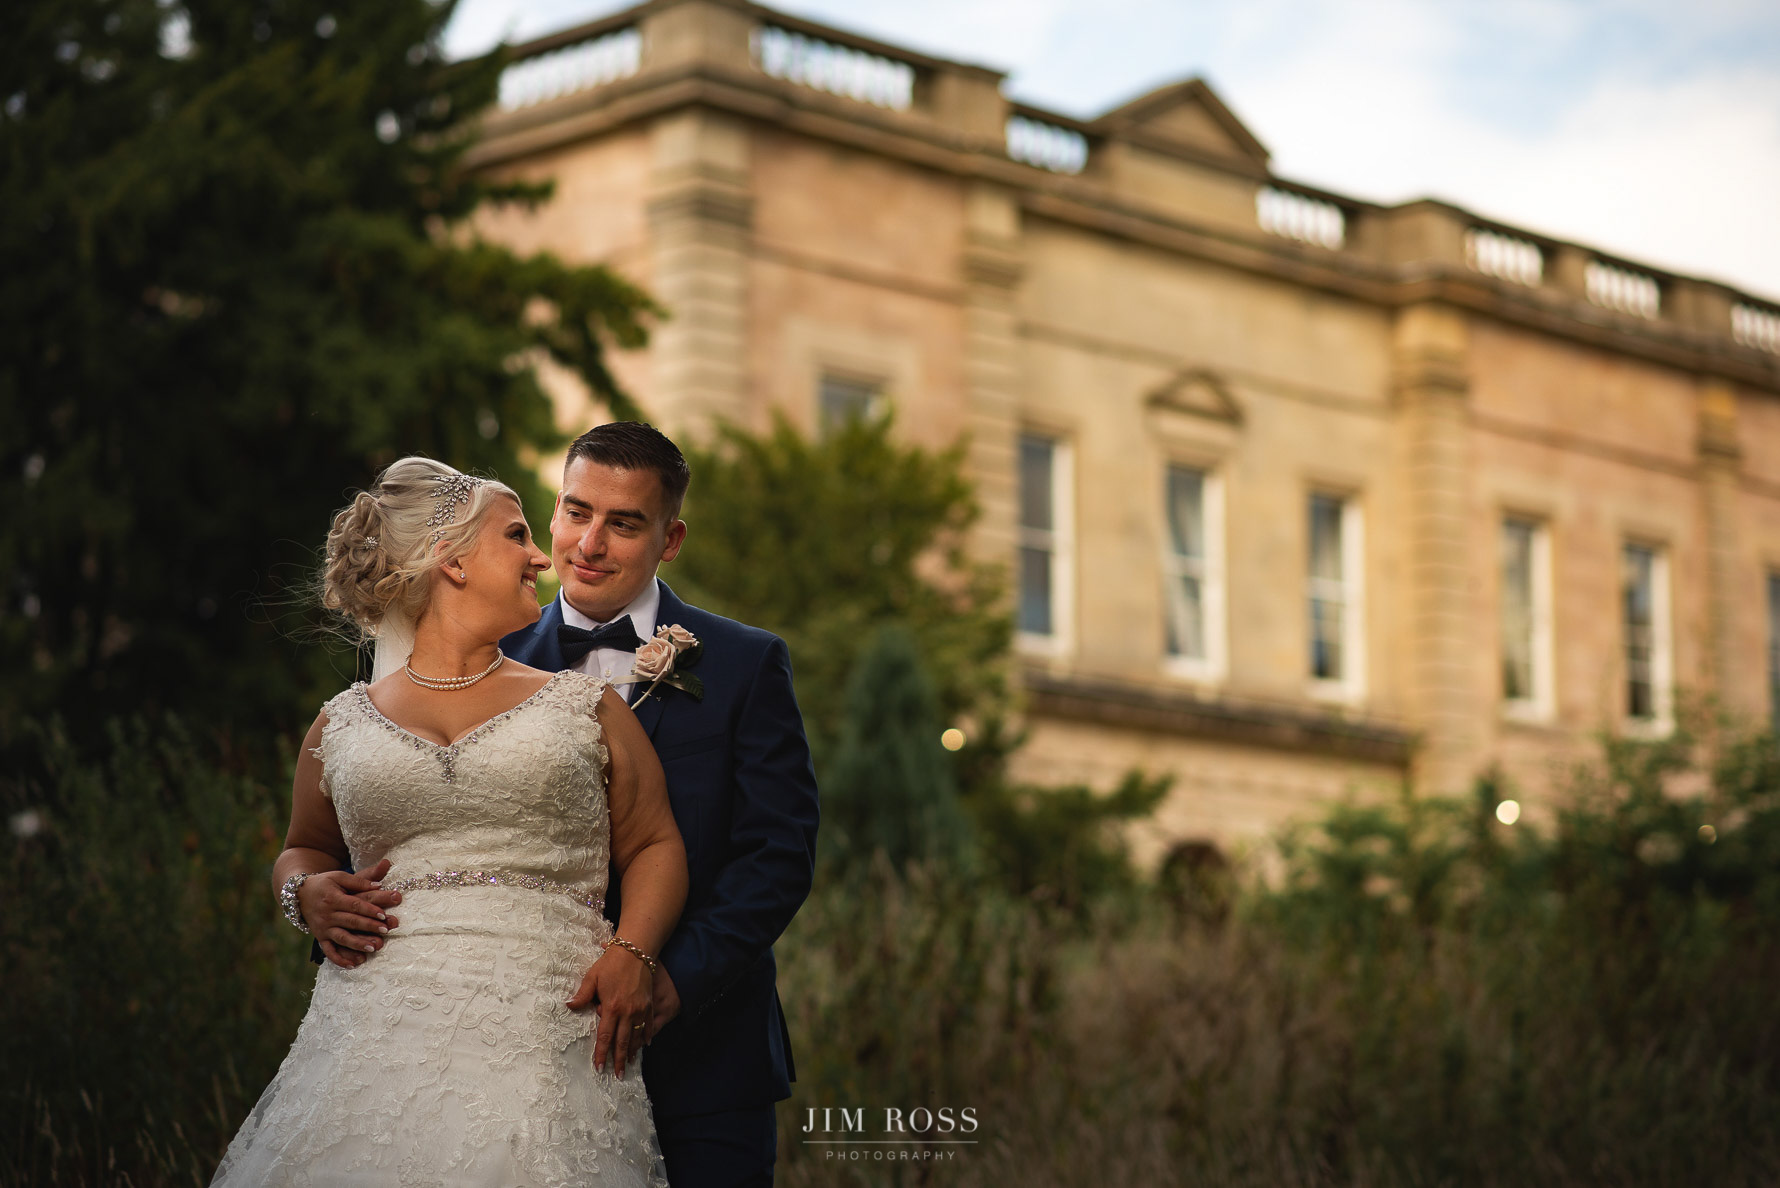 Couple portrait with grand manor house in background